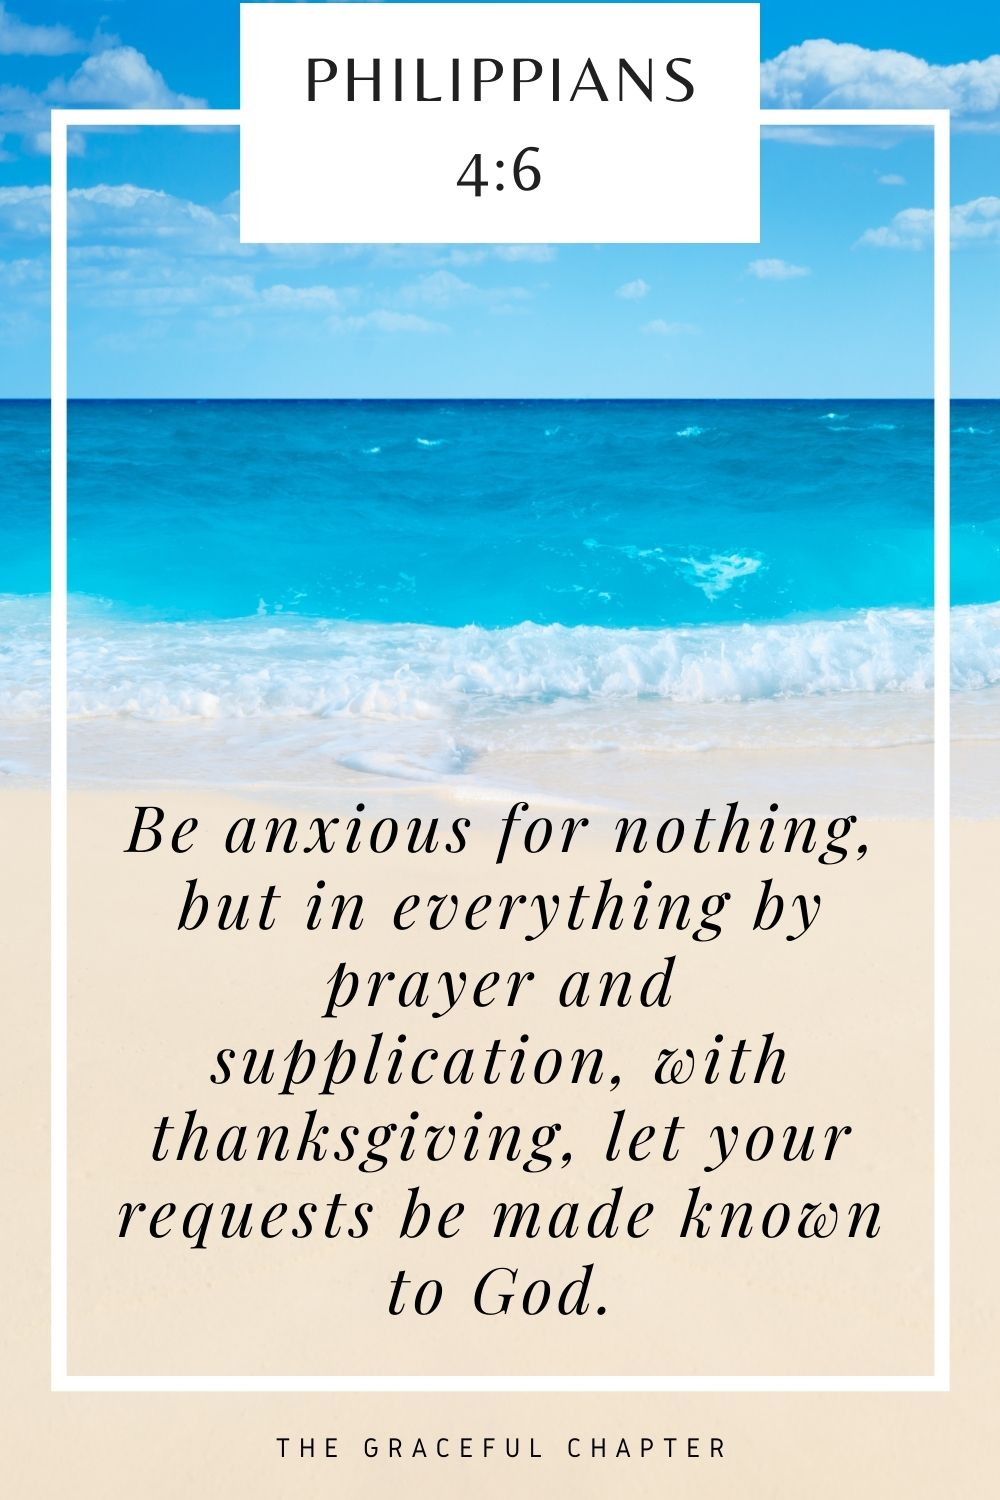 Be anxious for nothing, but in everything by prayer and supplication, with thanksgiving, let your requests be made known to God. Philippians 4:6